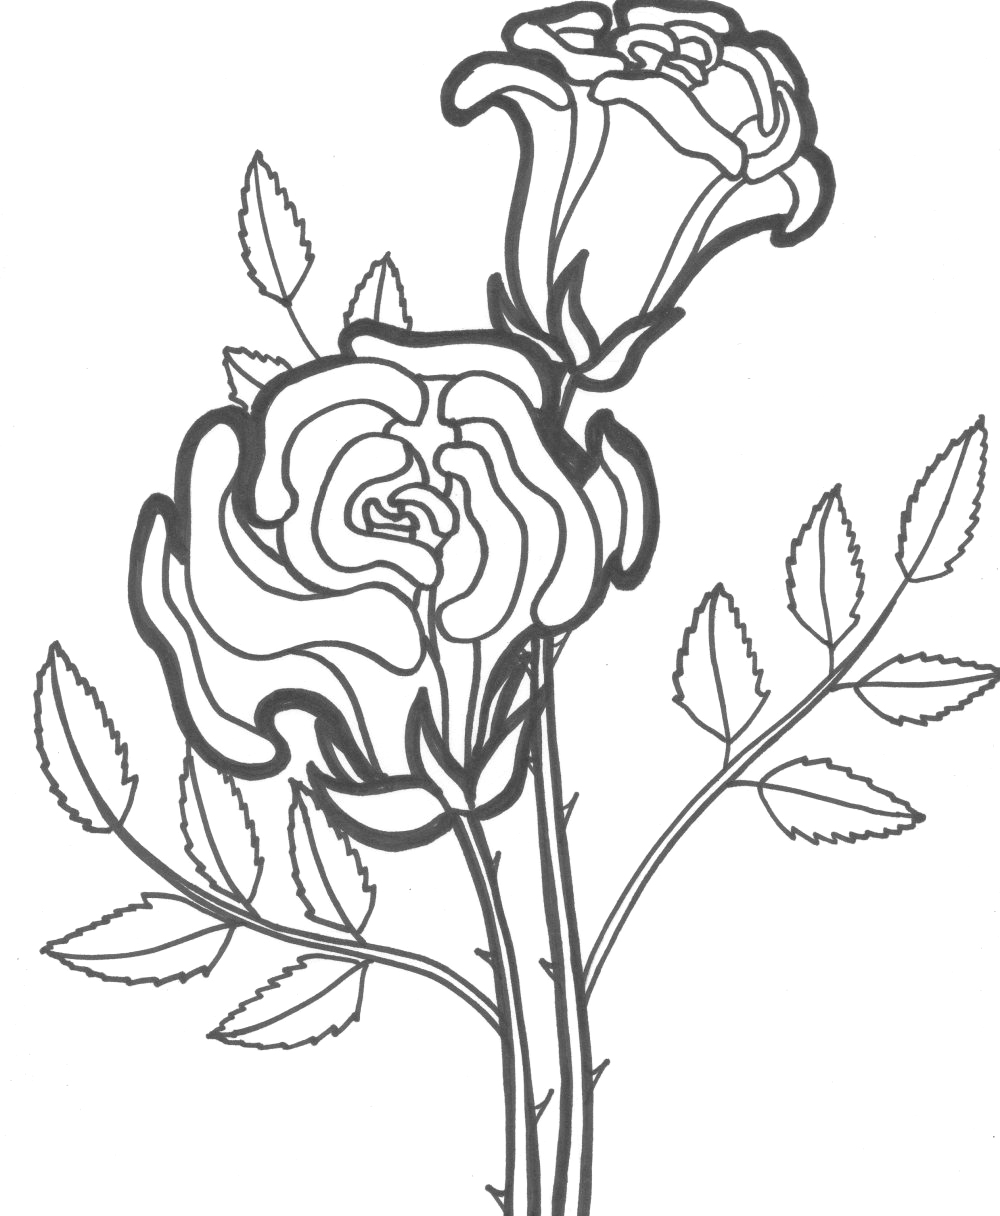 coloring sheet rose flower coloring pages roses flowers coloring page free printable coloring pages sheet rose pages flower coloring coloring